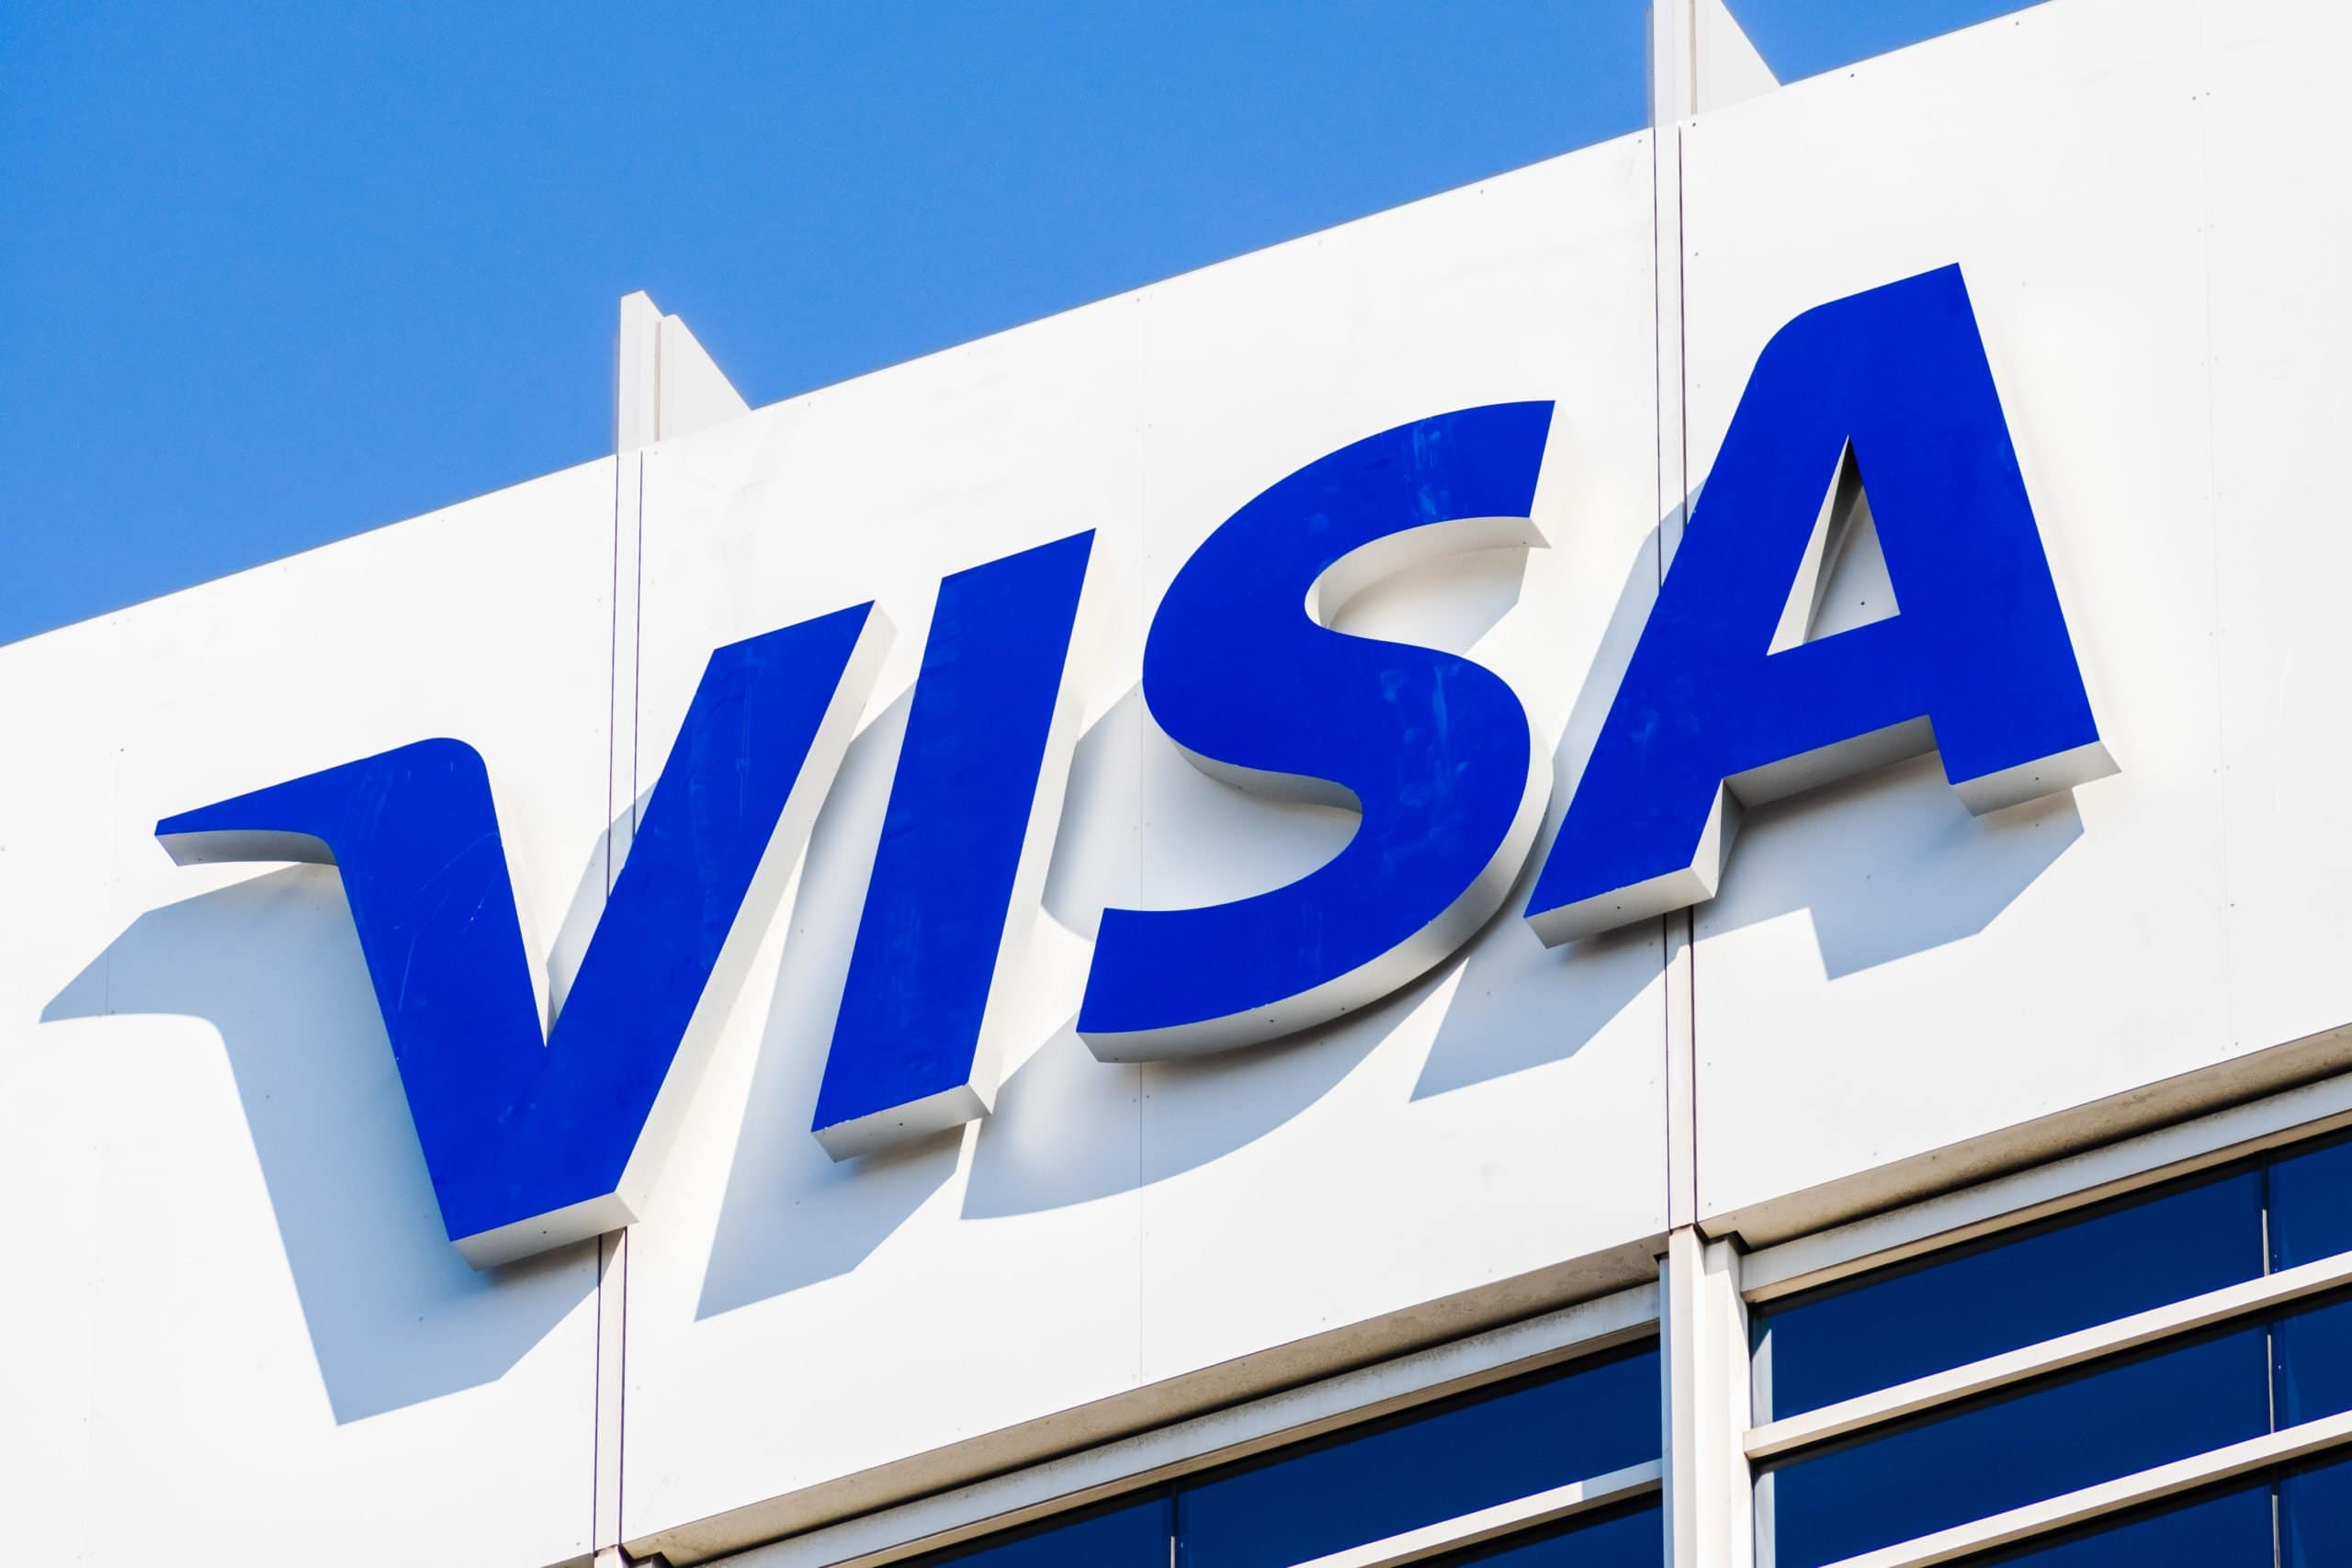 Visa buys Plaid in deal that should concern the crypto industry